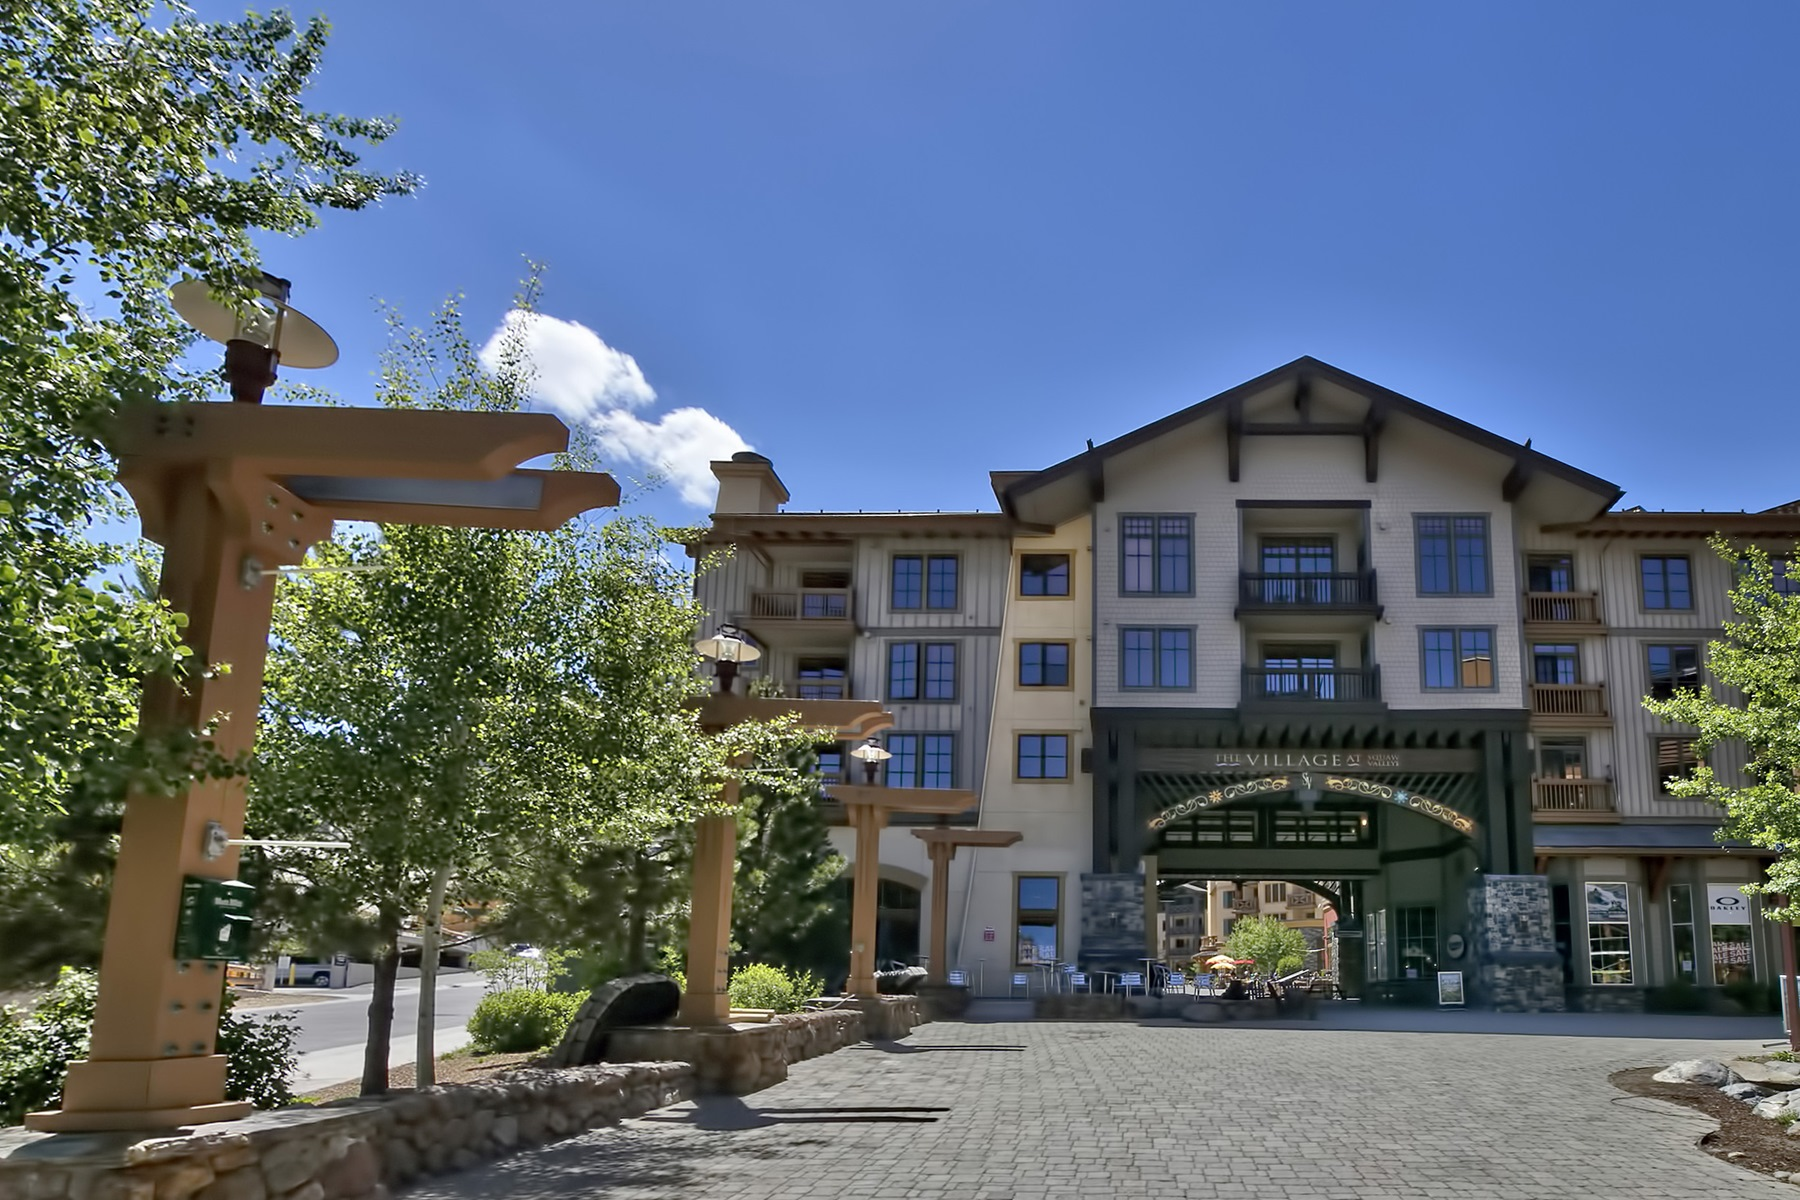 Additional photo for property listing at 1880 Village South Road #3-436, Olympic Valley CA 96146 1880 Village South Road #3-436 Olympic Valley, California 96146 United States